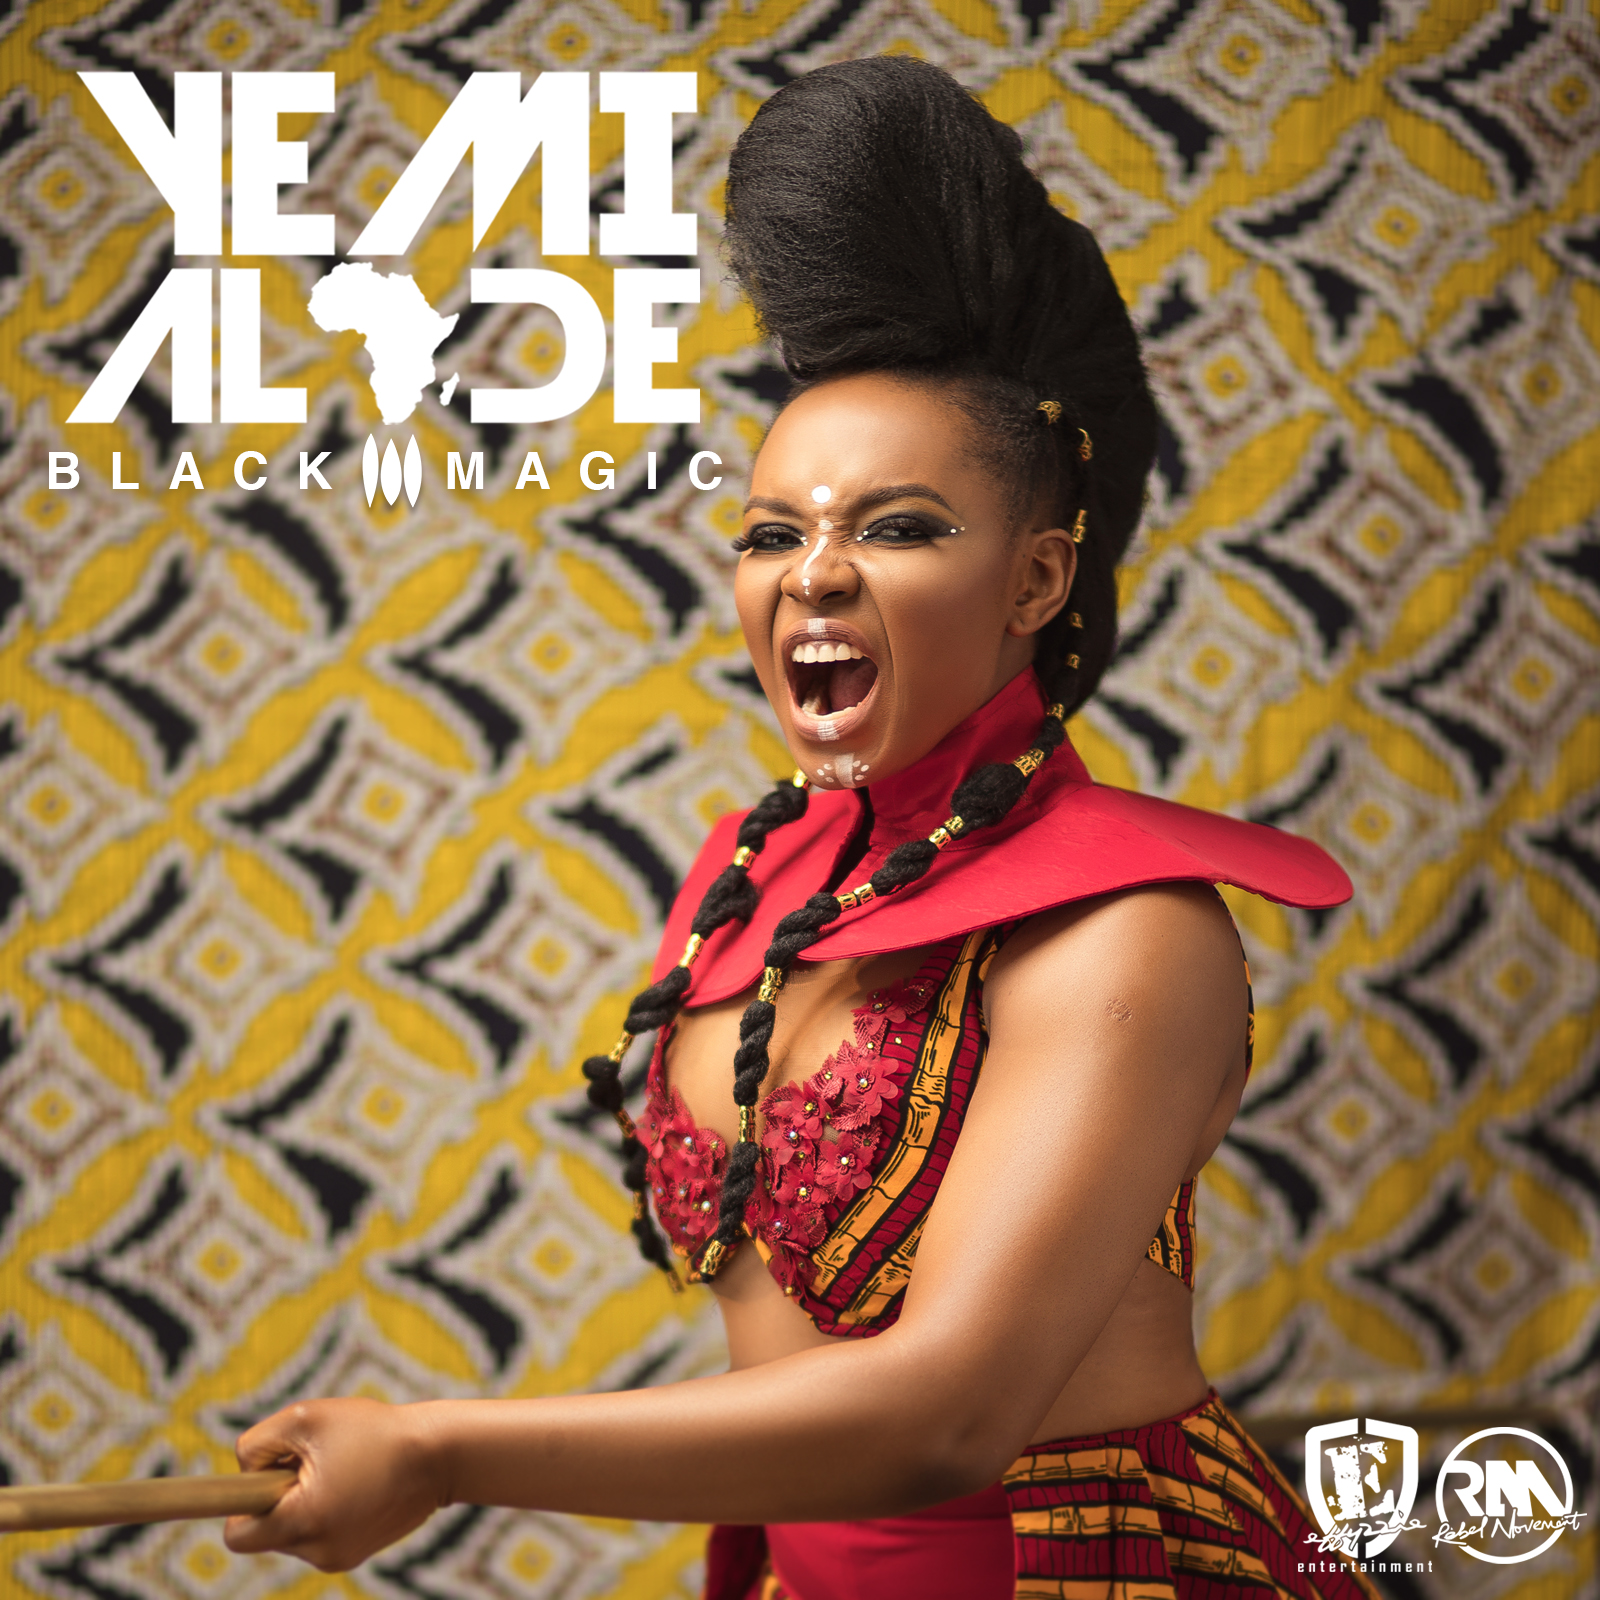 Yemi-Alade-Black-Magic-Album-Art-Front.jpg